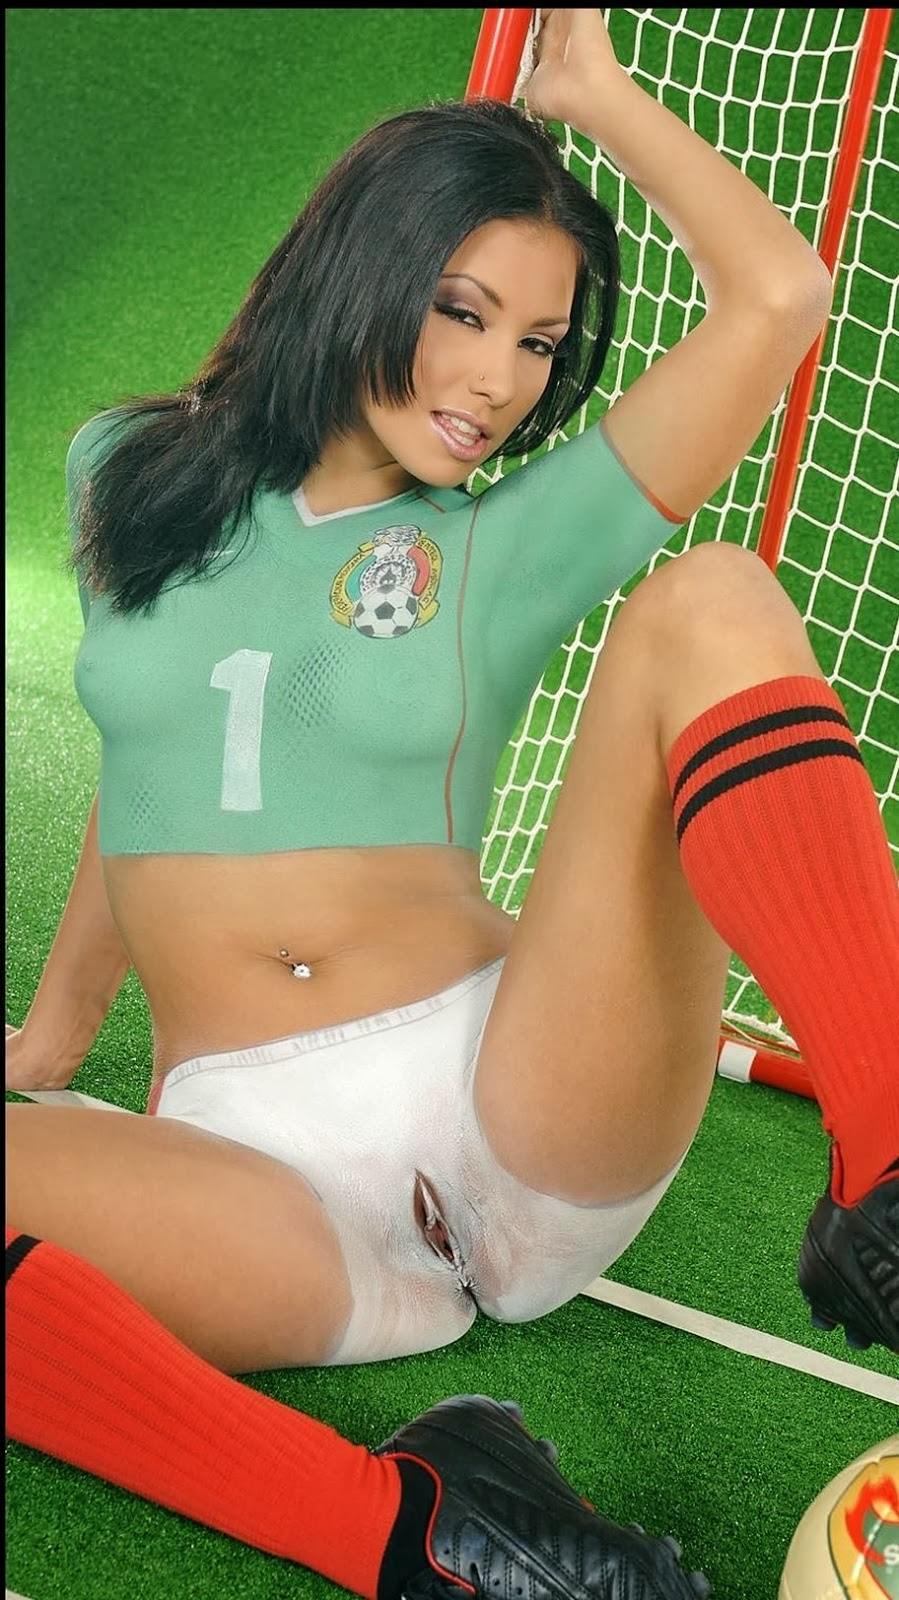 image Argentina soccer players fucking cute cheerleaders